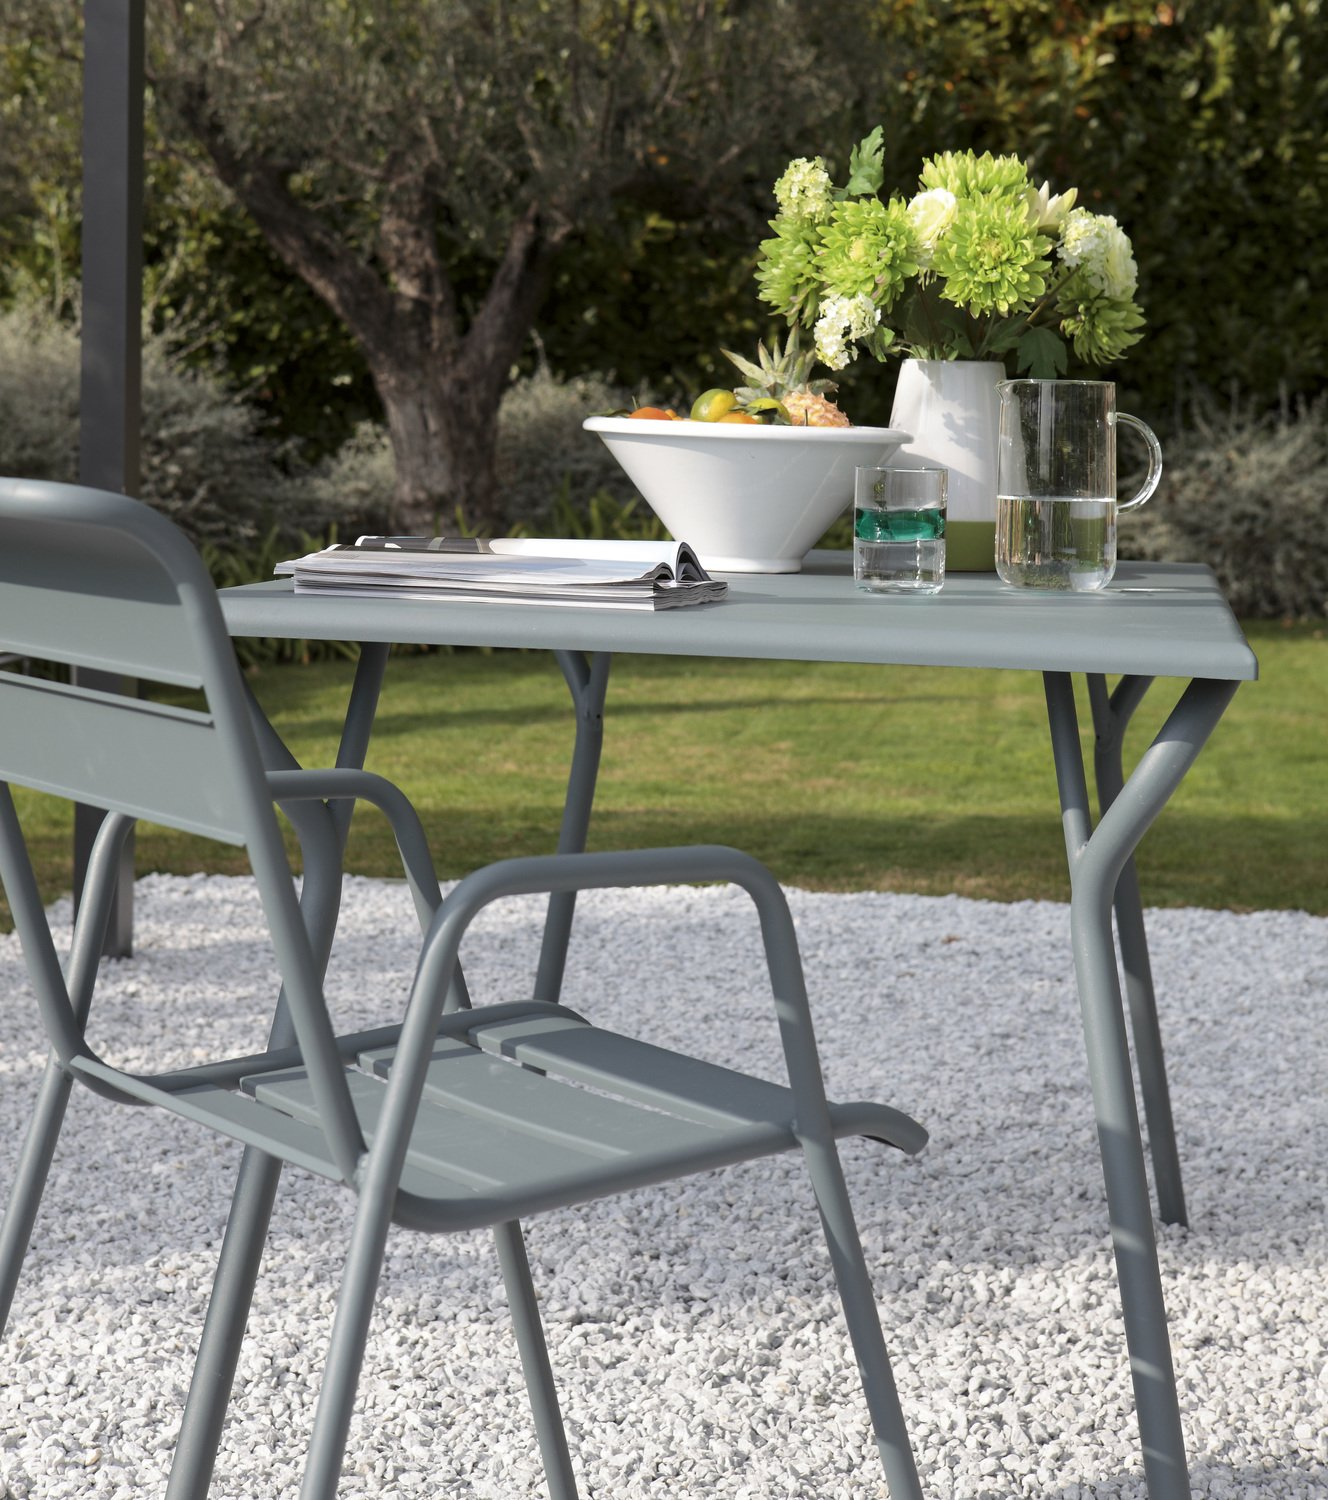 table et chaise de jardin fermob rectangulaire gris orange en acier leroy merlin. Black Bedroom Furniture Sets. Home Design Ideas